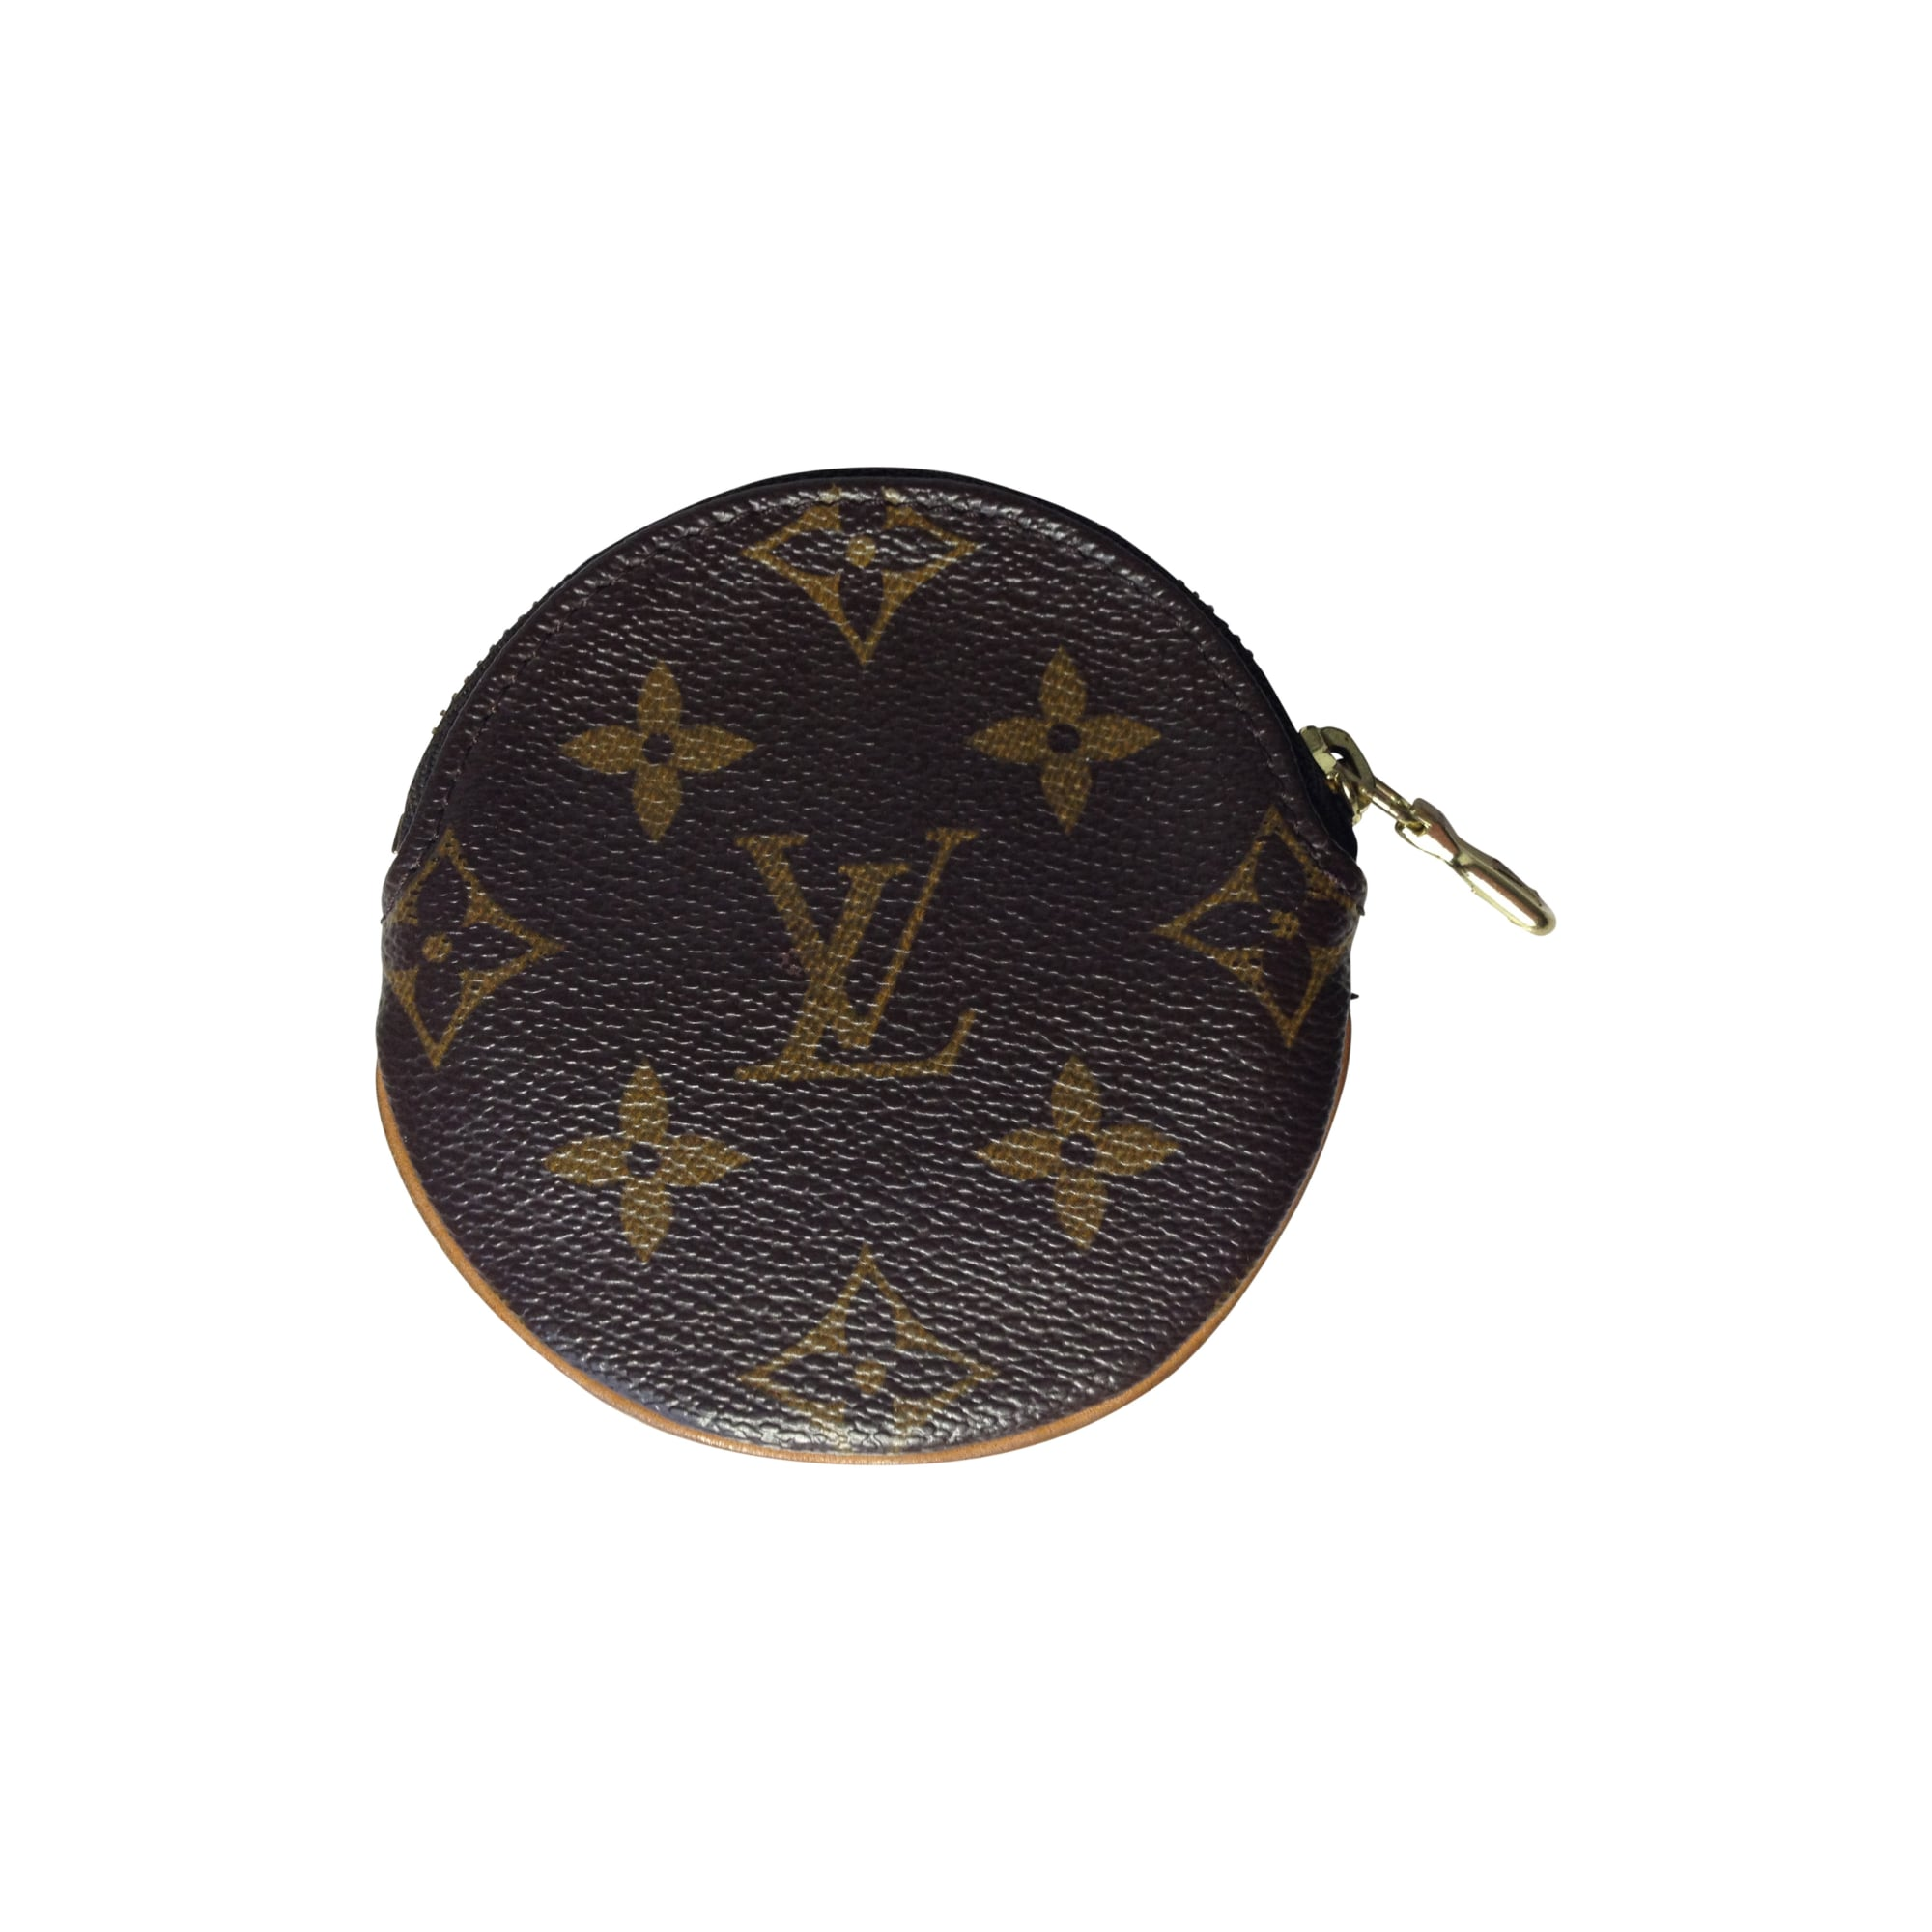 d034f8000d2 Porte-monnaie LOUIS VUITTON marron vendu par B - 2091624